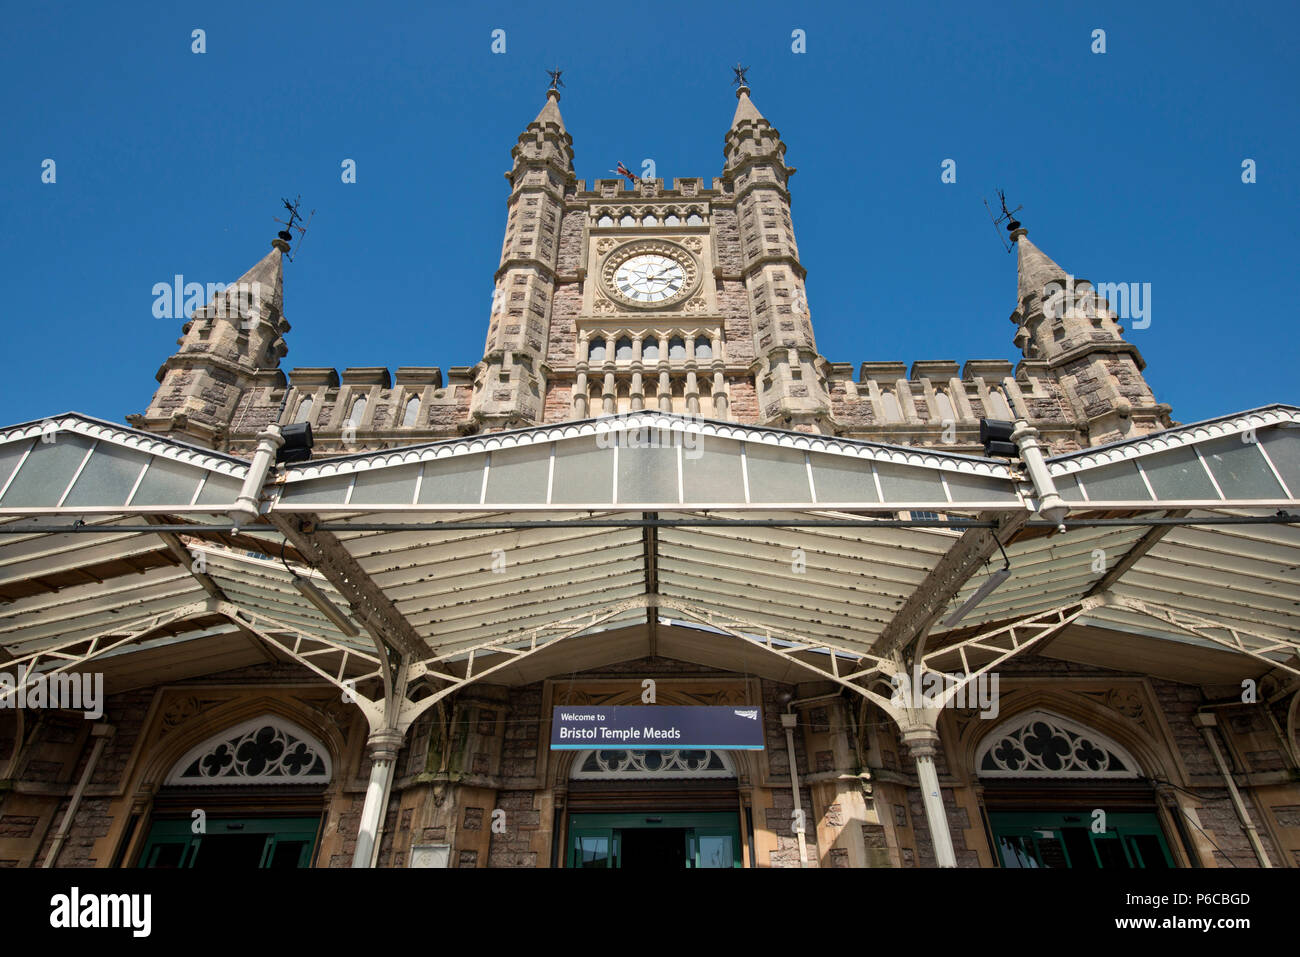 Temple Meads station, Bristol. Stock Photo